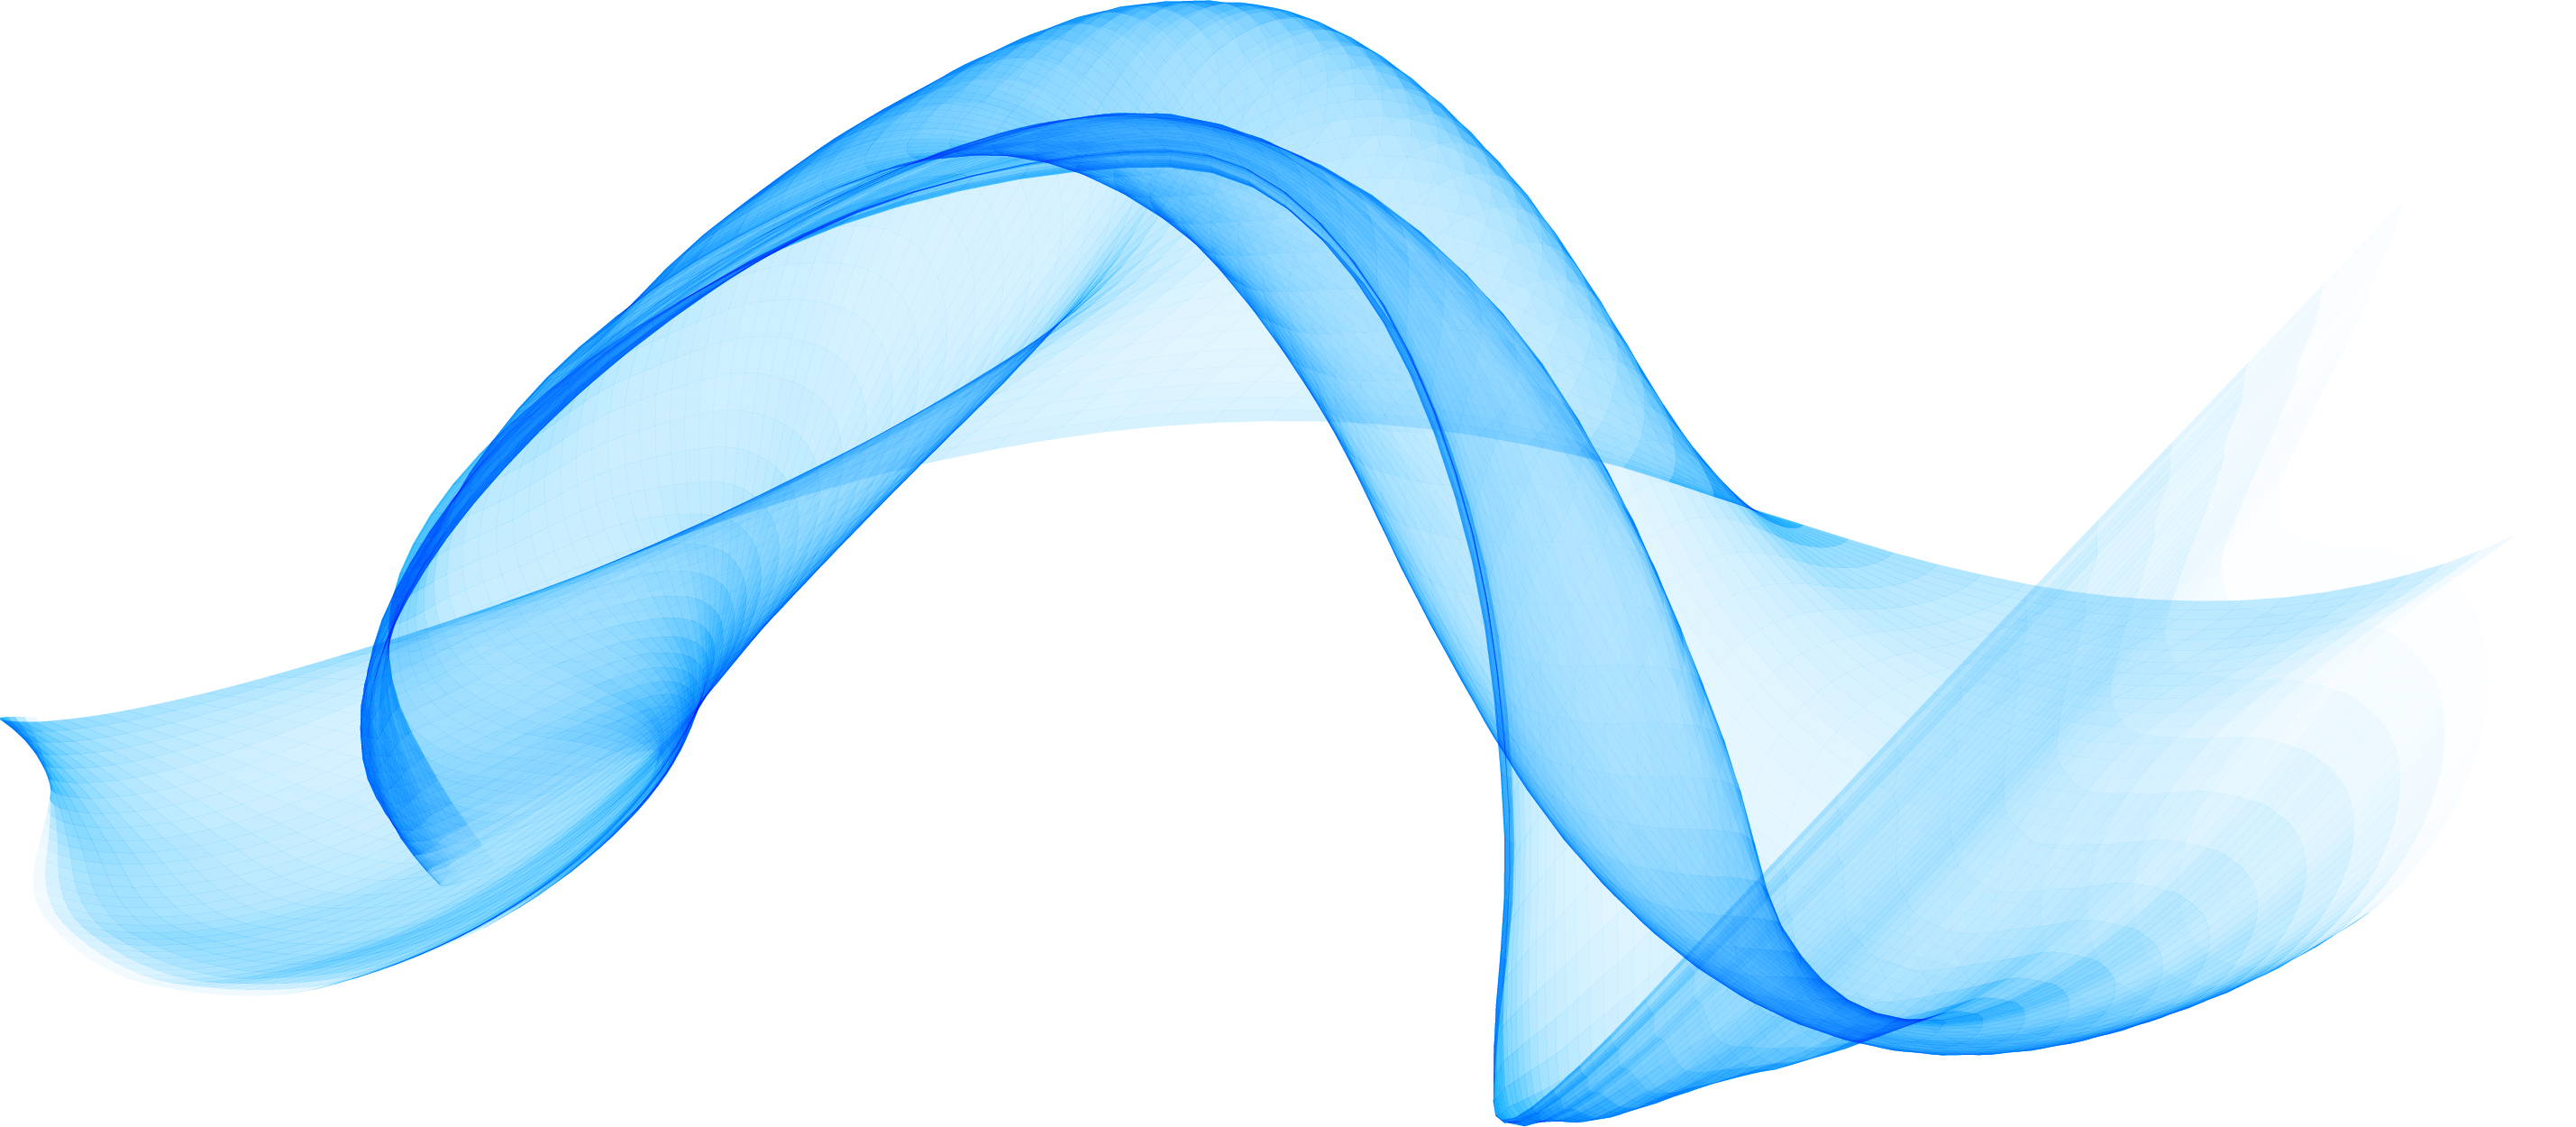 Blue wave computer file. Ripples vector vector freeuse